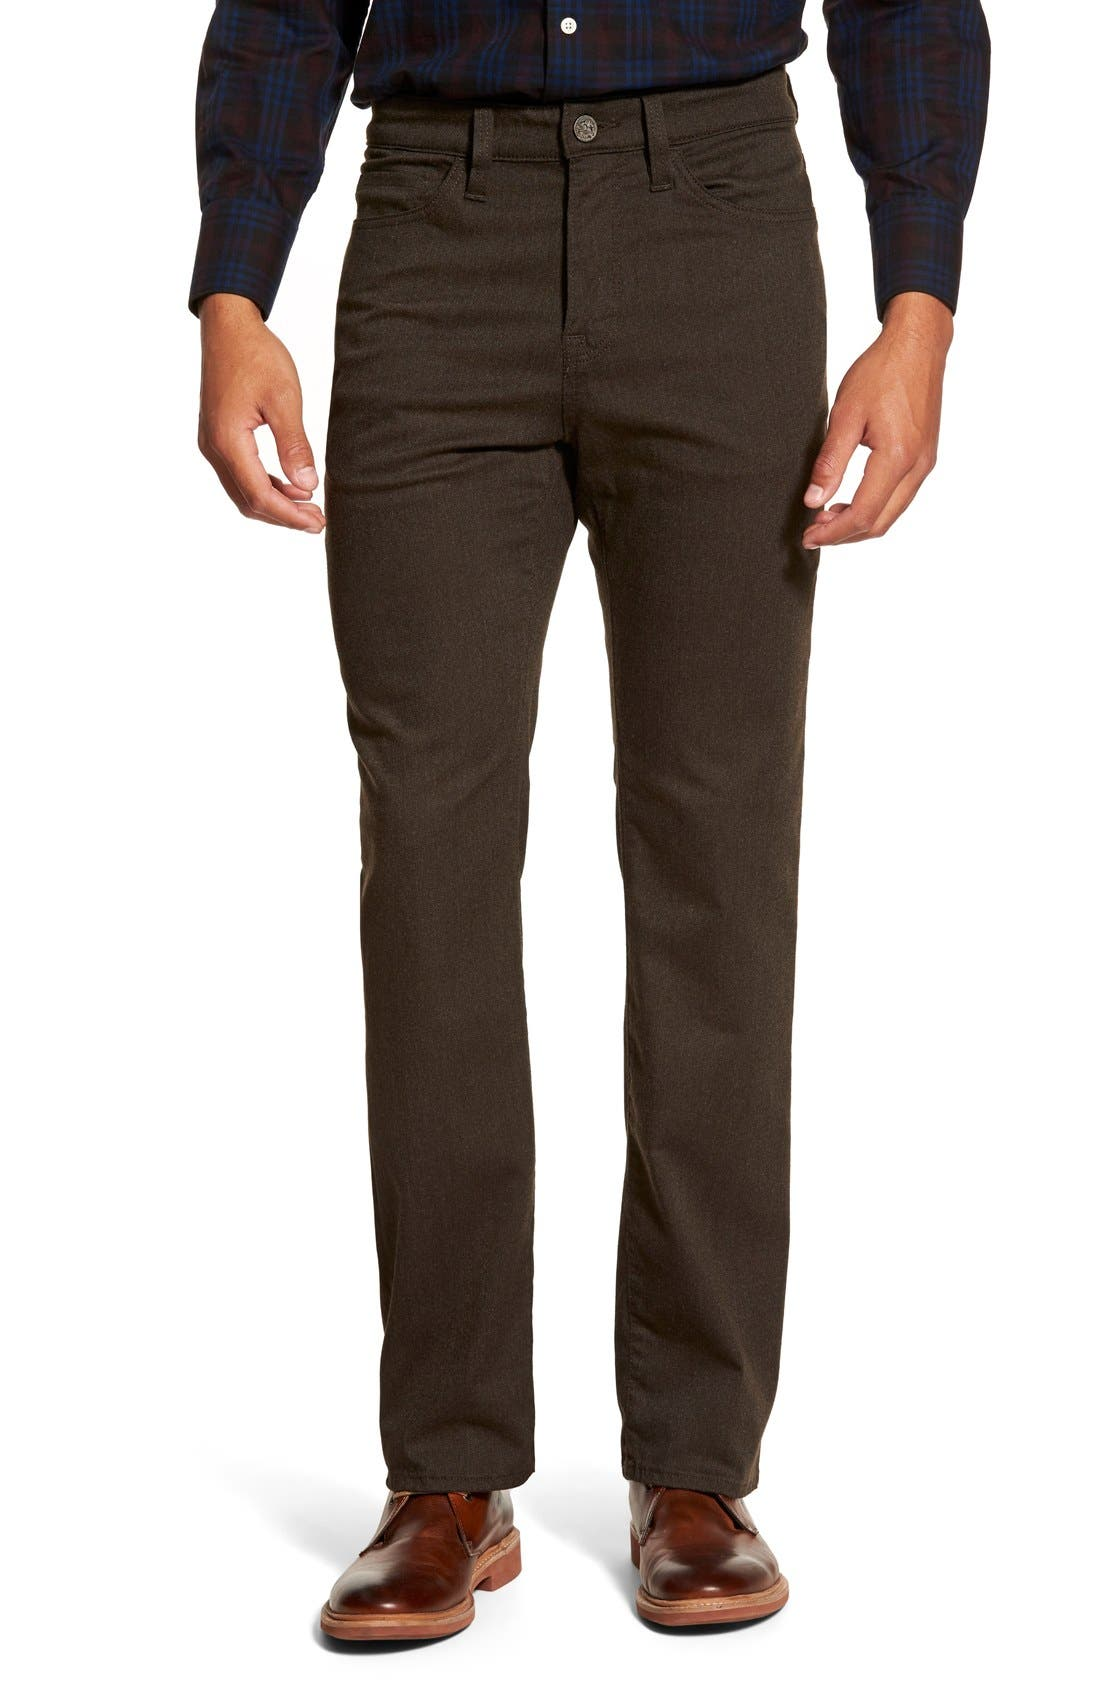 'Charisma' Relaxed Fit Jeans,                             Main thumbnail 1, color,                             200